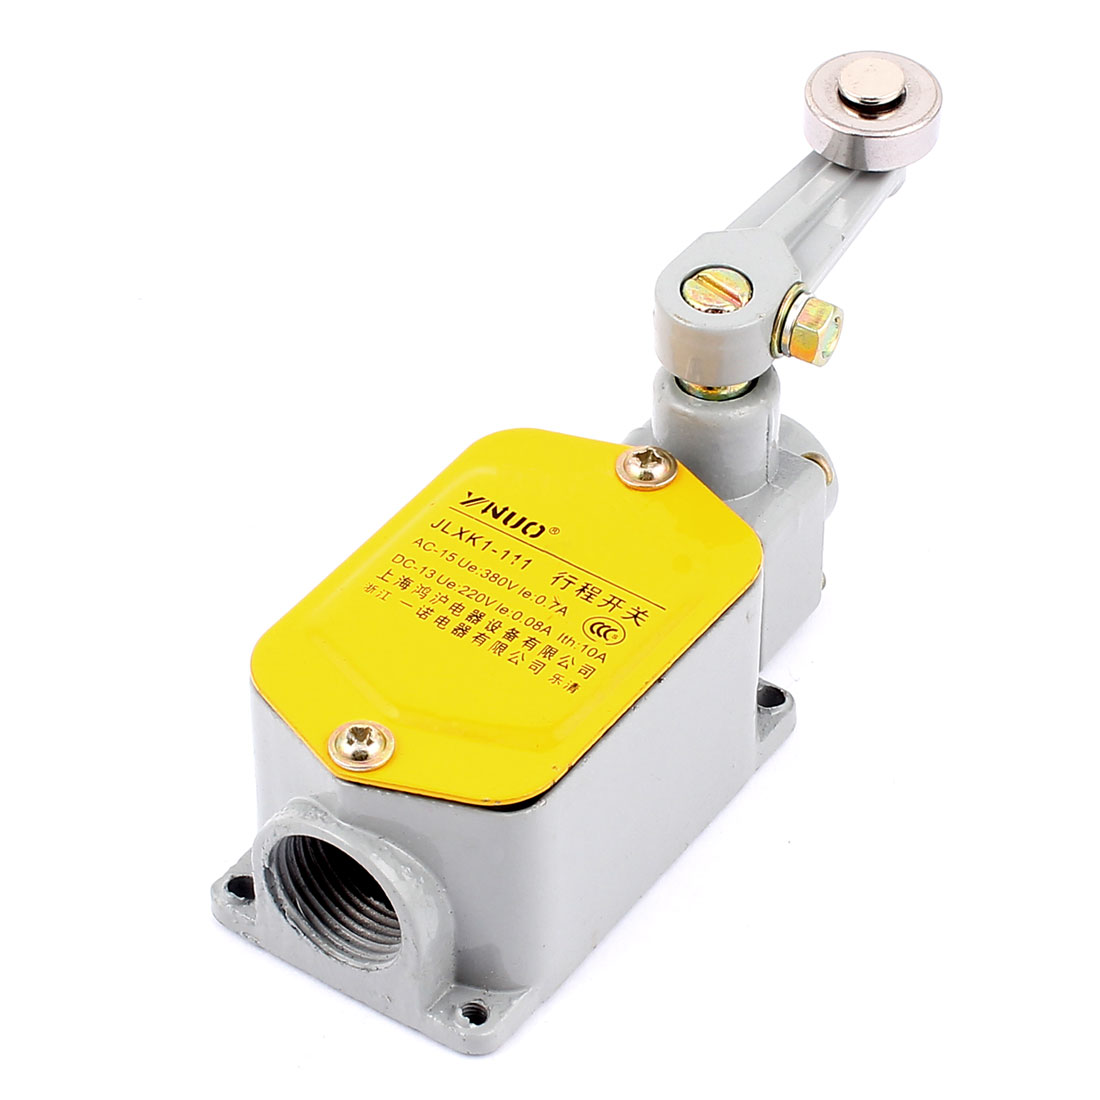 UXCELL Roller Lever Enclosed Momentary Rotary Actuator Limit Switch Jlxk1-111 10pcs long straight hinge lever spdt micro limit switch v 153 1c25